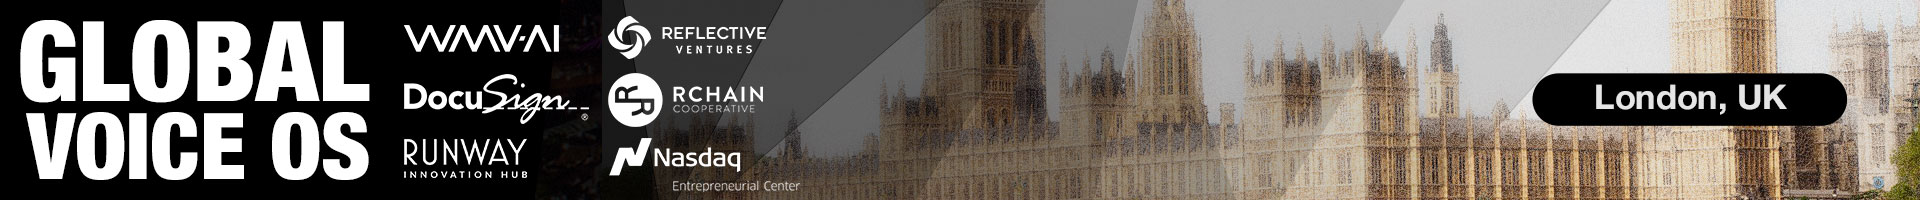 Event-Global-Voice-OS-1920x200-London-UK